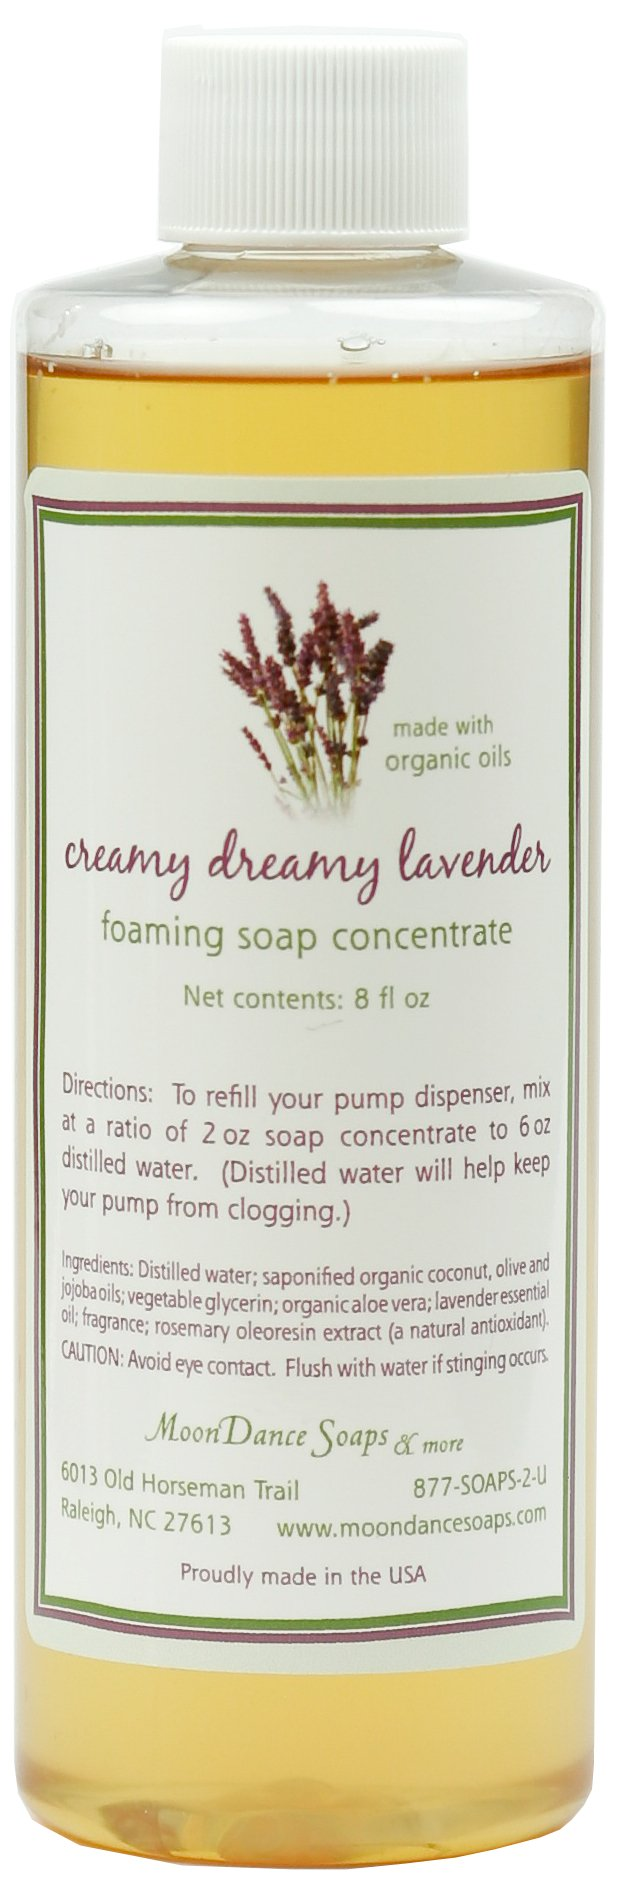 Lavender Foaming Hand Wash Refill by MoonDance Soaps - Fabulous Foaming Castile Soap Concentrate with Aloe Vera and Essential Oils, 8 Fl. Ounce